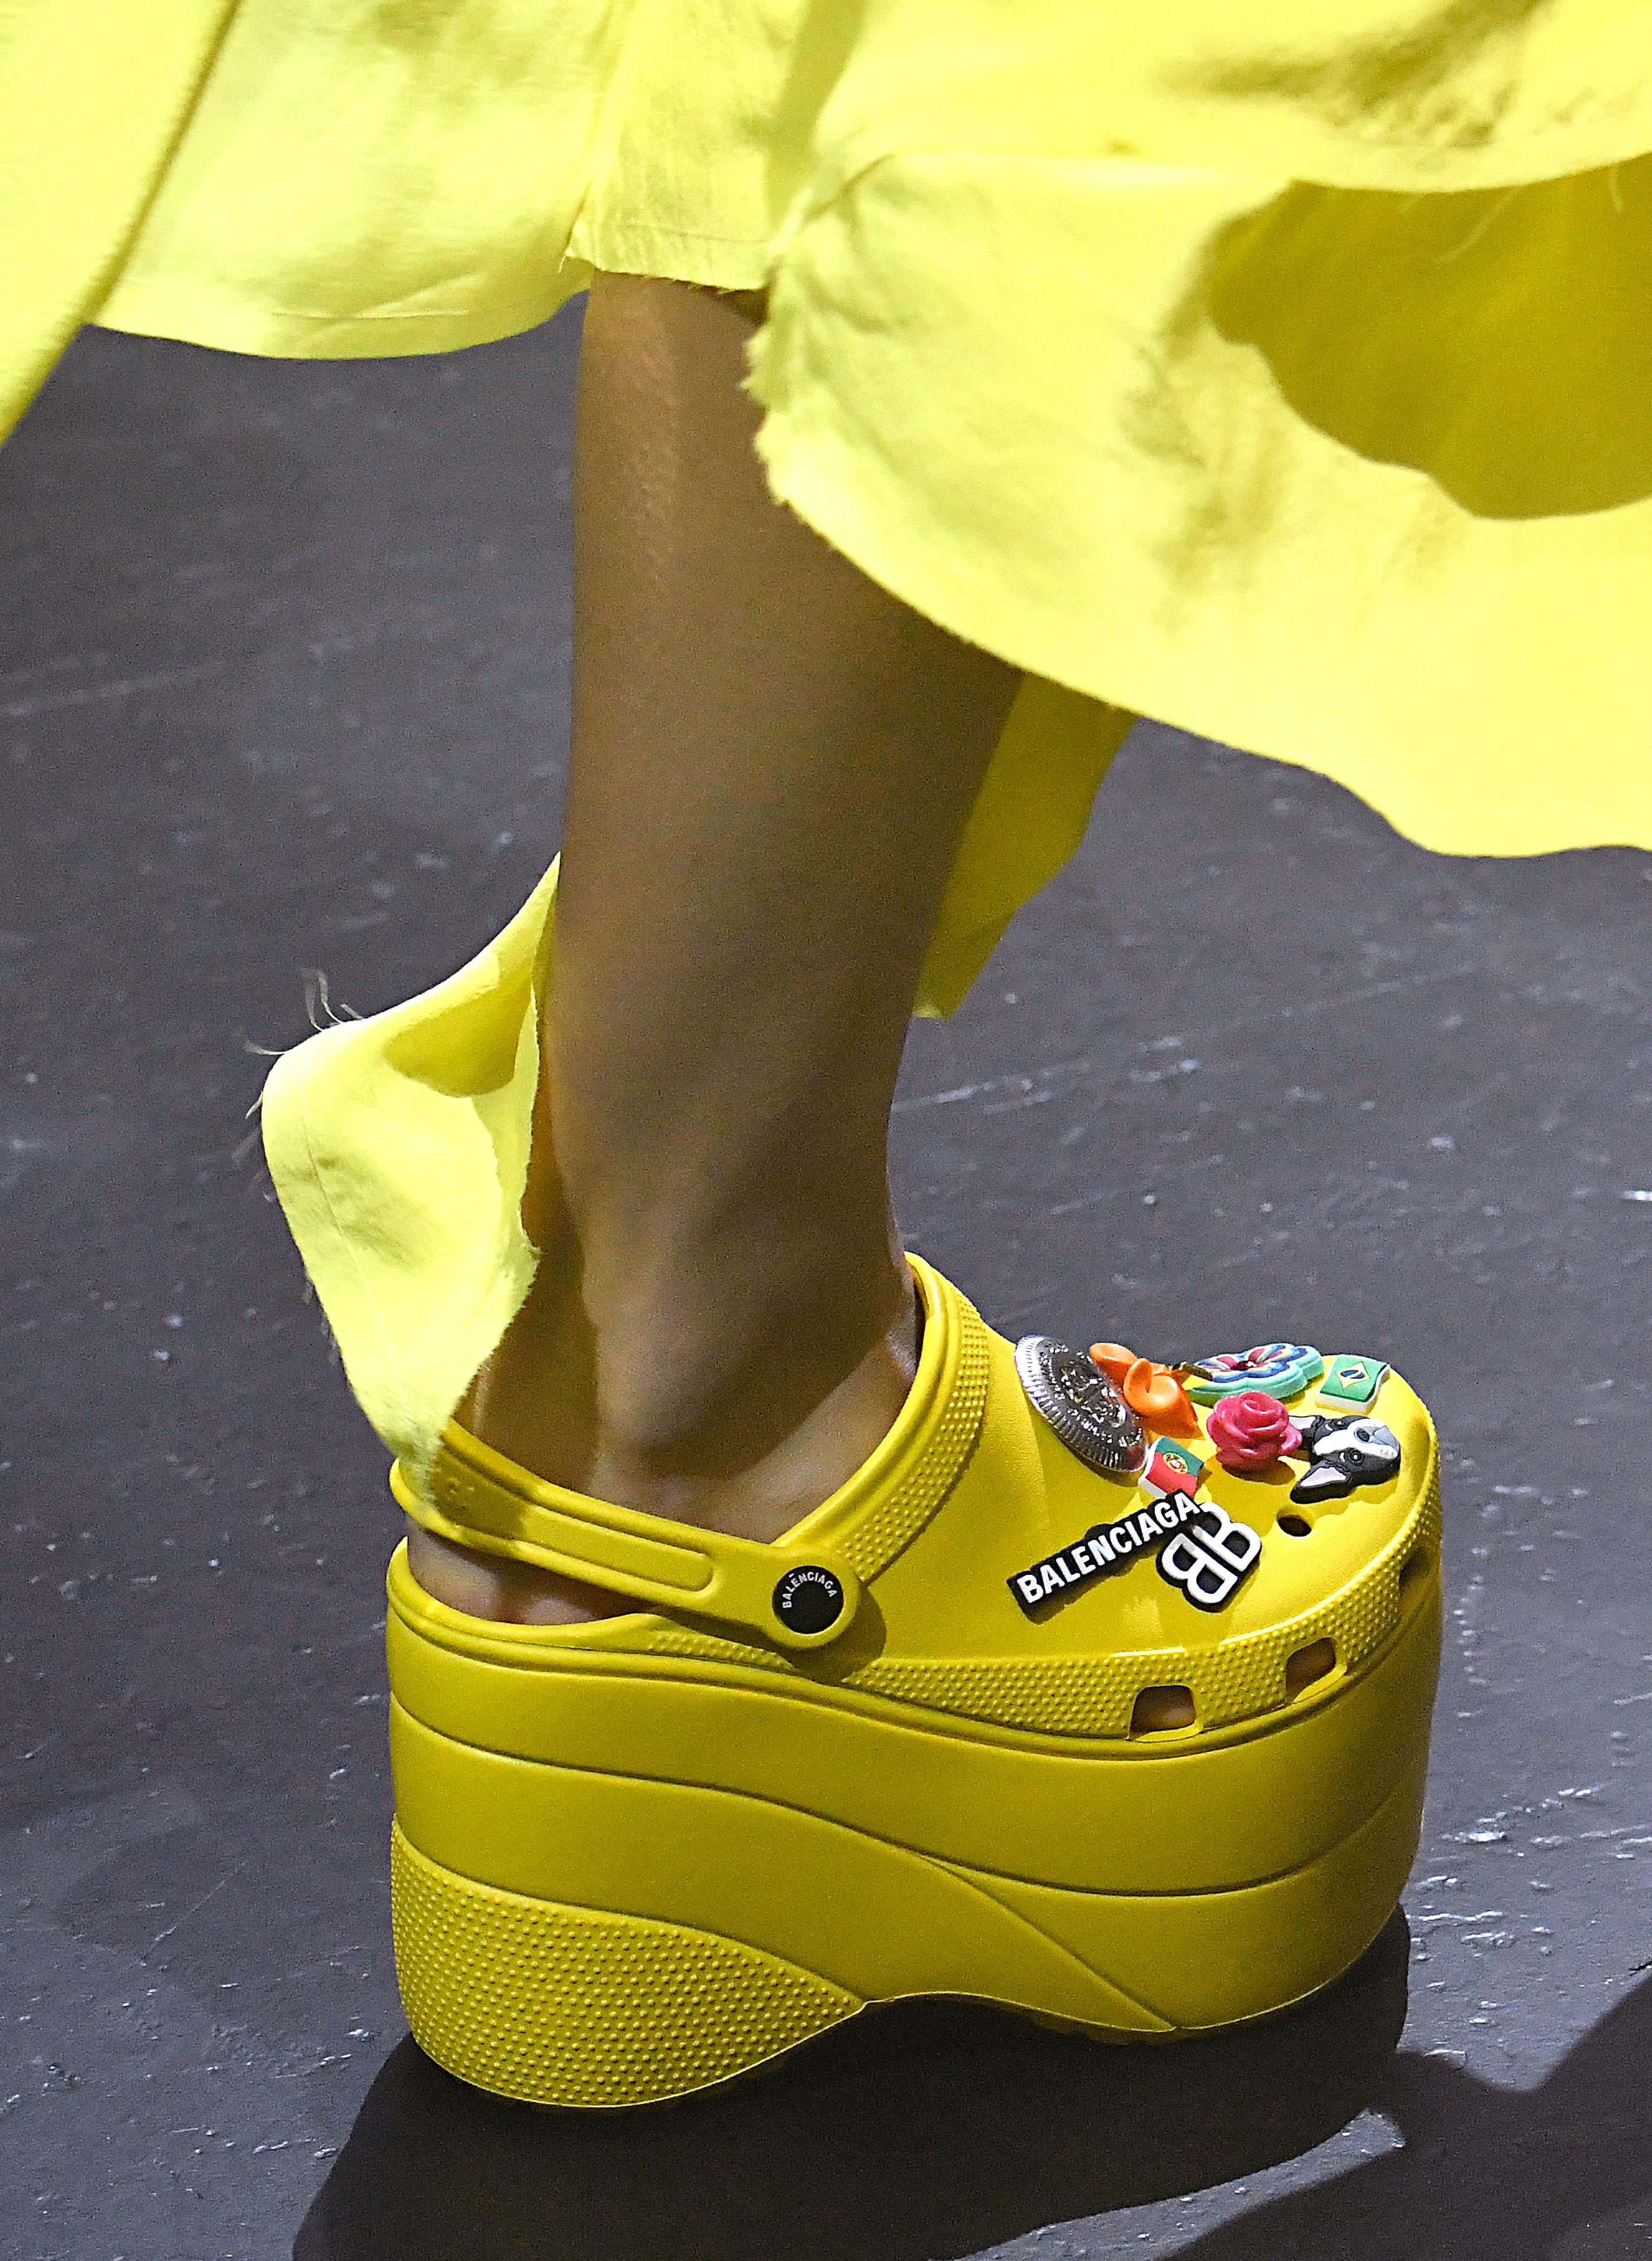 Balenciaga S Platform Crocs At Paris Fashion Week Love It